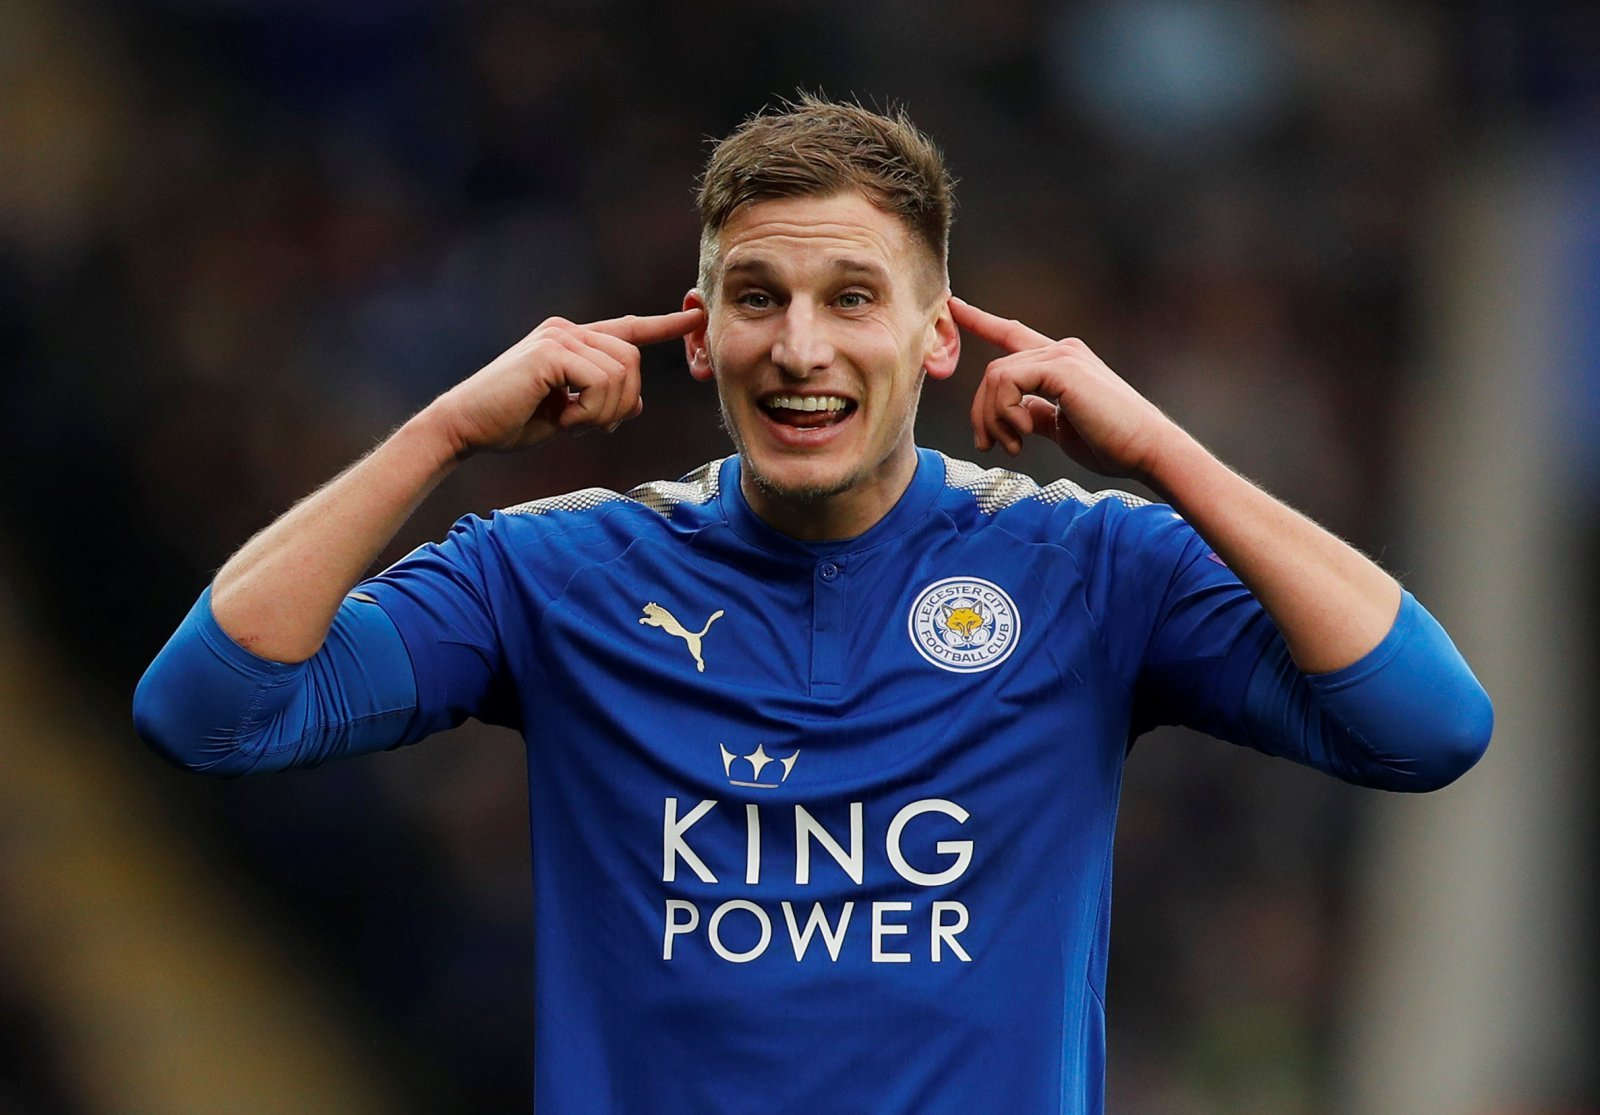 Albrighton and Pereira slowly forming an effective partnership at Leicester City